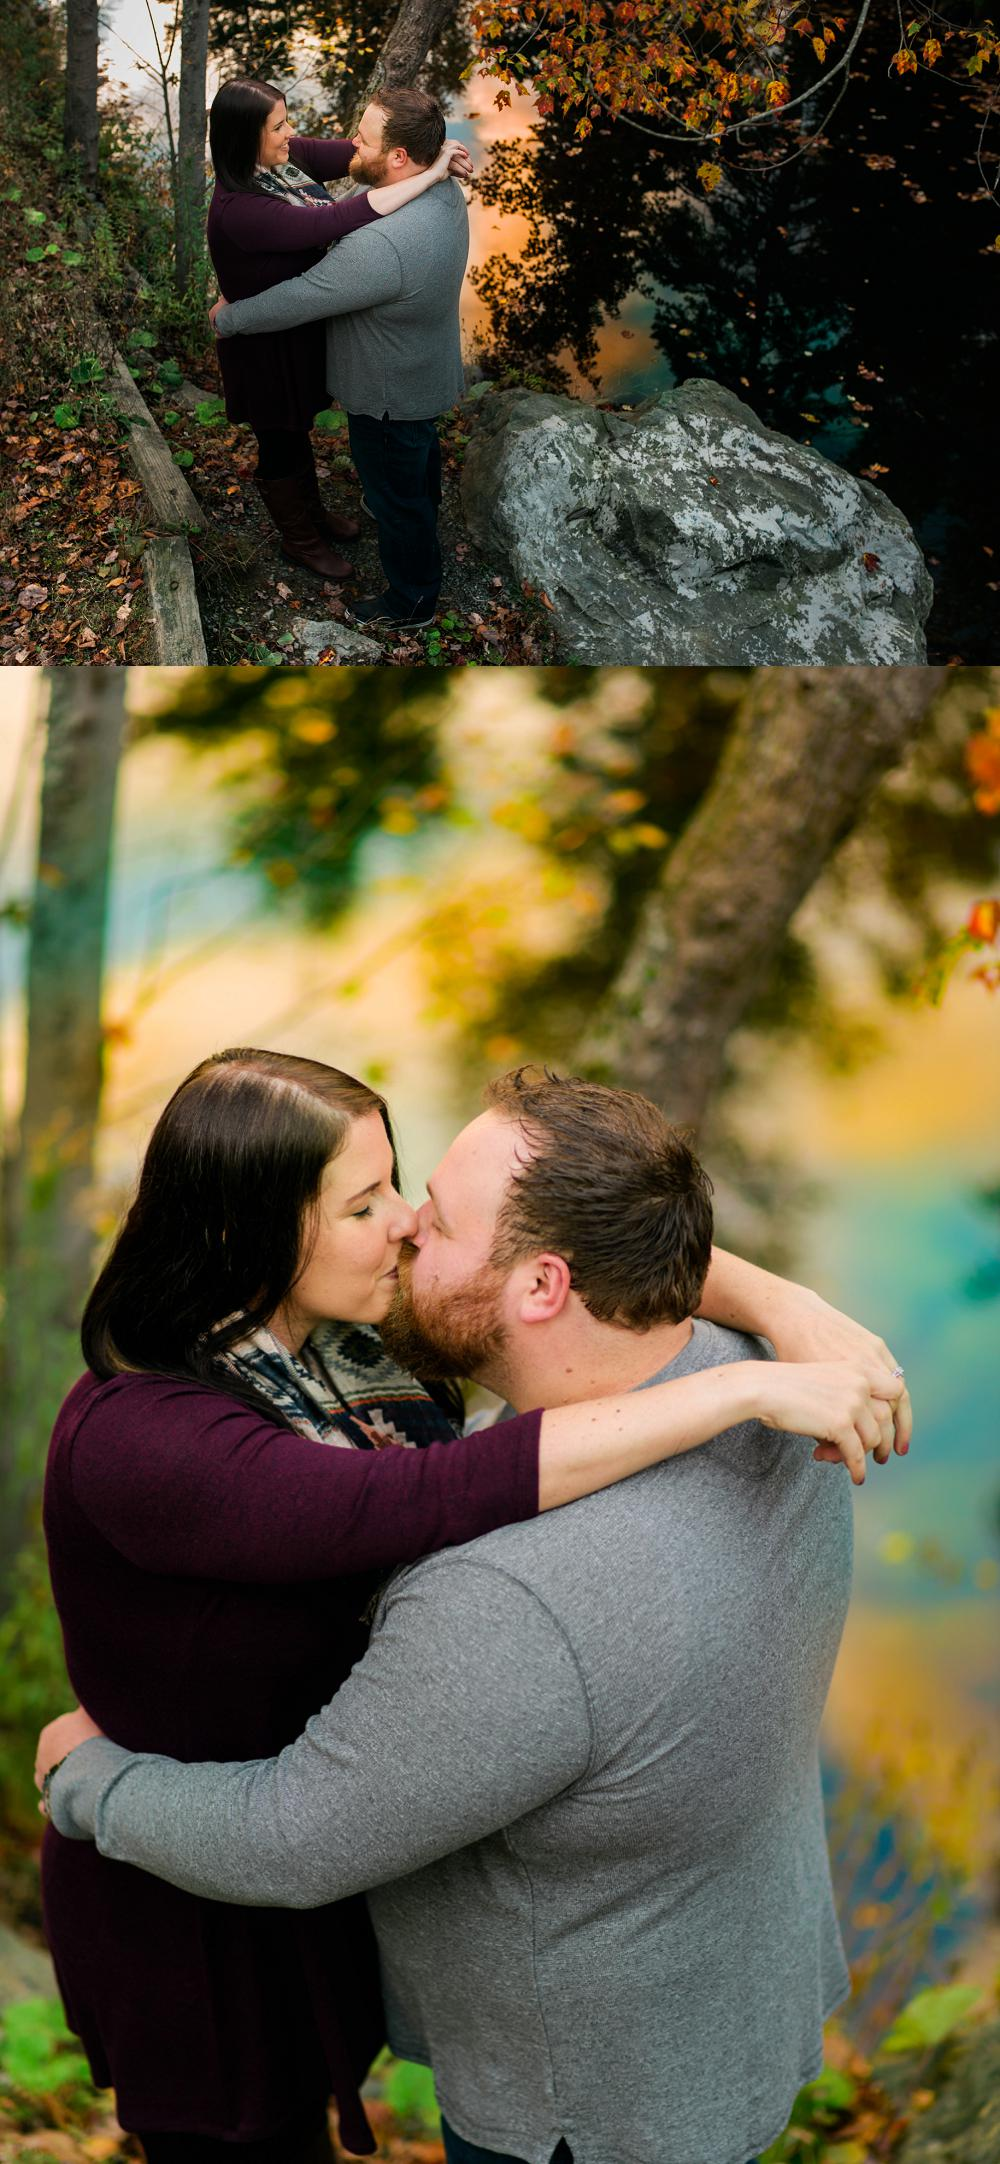 melissa and jeff enjoy an engagement session at shubie park in dartmouth nova scotia